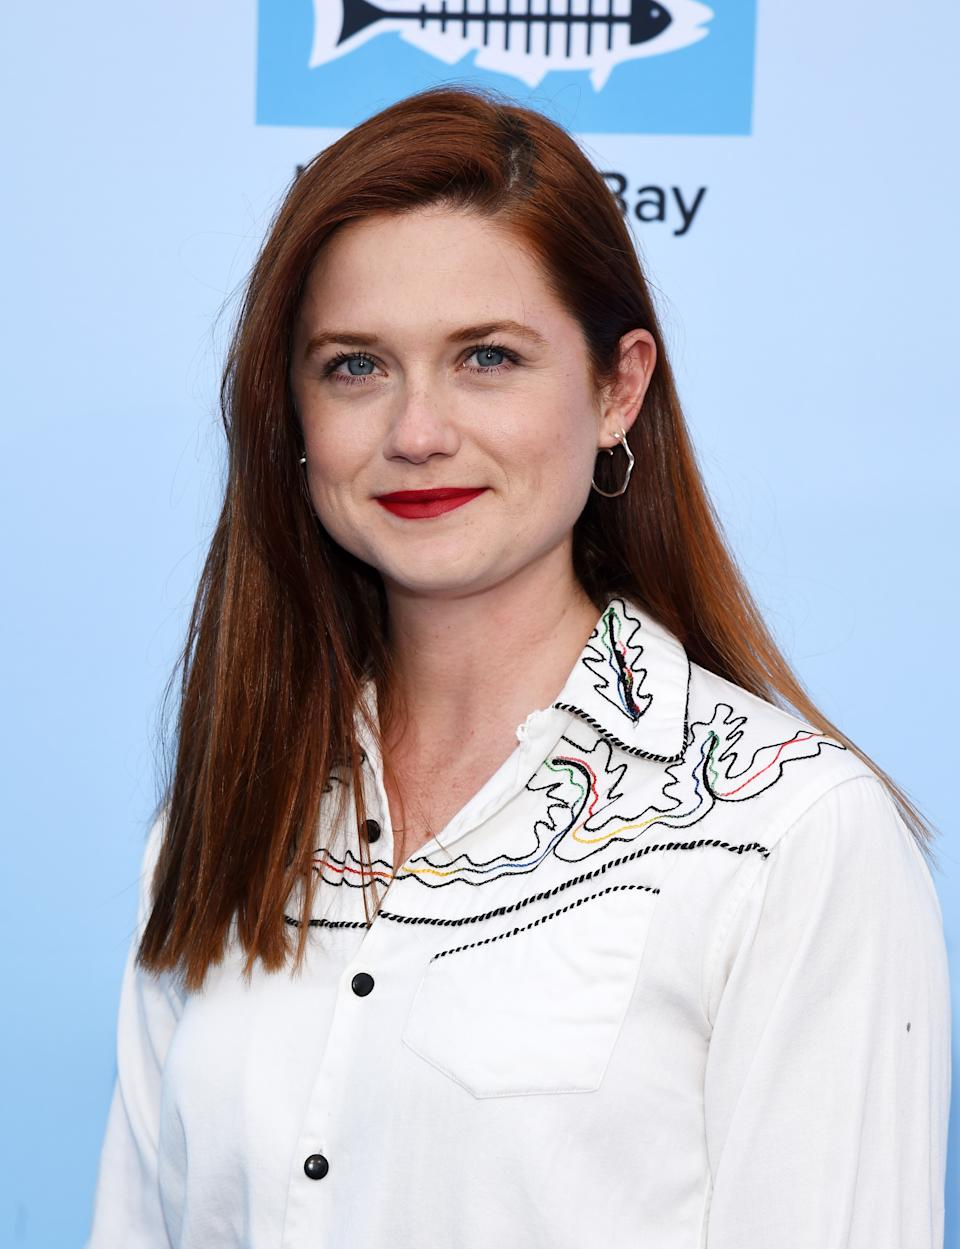 SANTA MONICA, CALIFORNIA - MAY 23: Actress Bonnie Wright arrives at Heal The Bay's Bring Back The Beach Annual Awards Gala at Jonathan Beach Club on May 23, 2019 in Santa Monica, California. (Photo by Amanda Edwards/Getty Images)